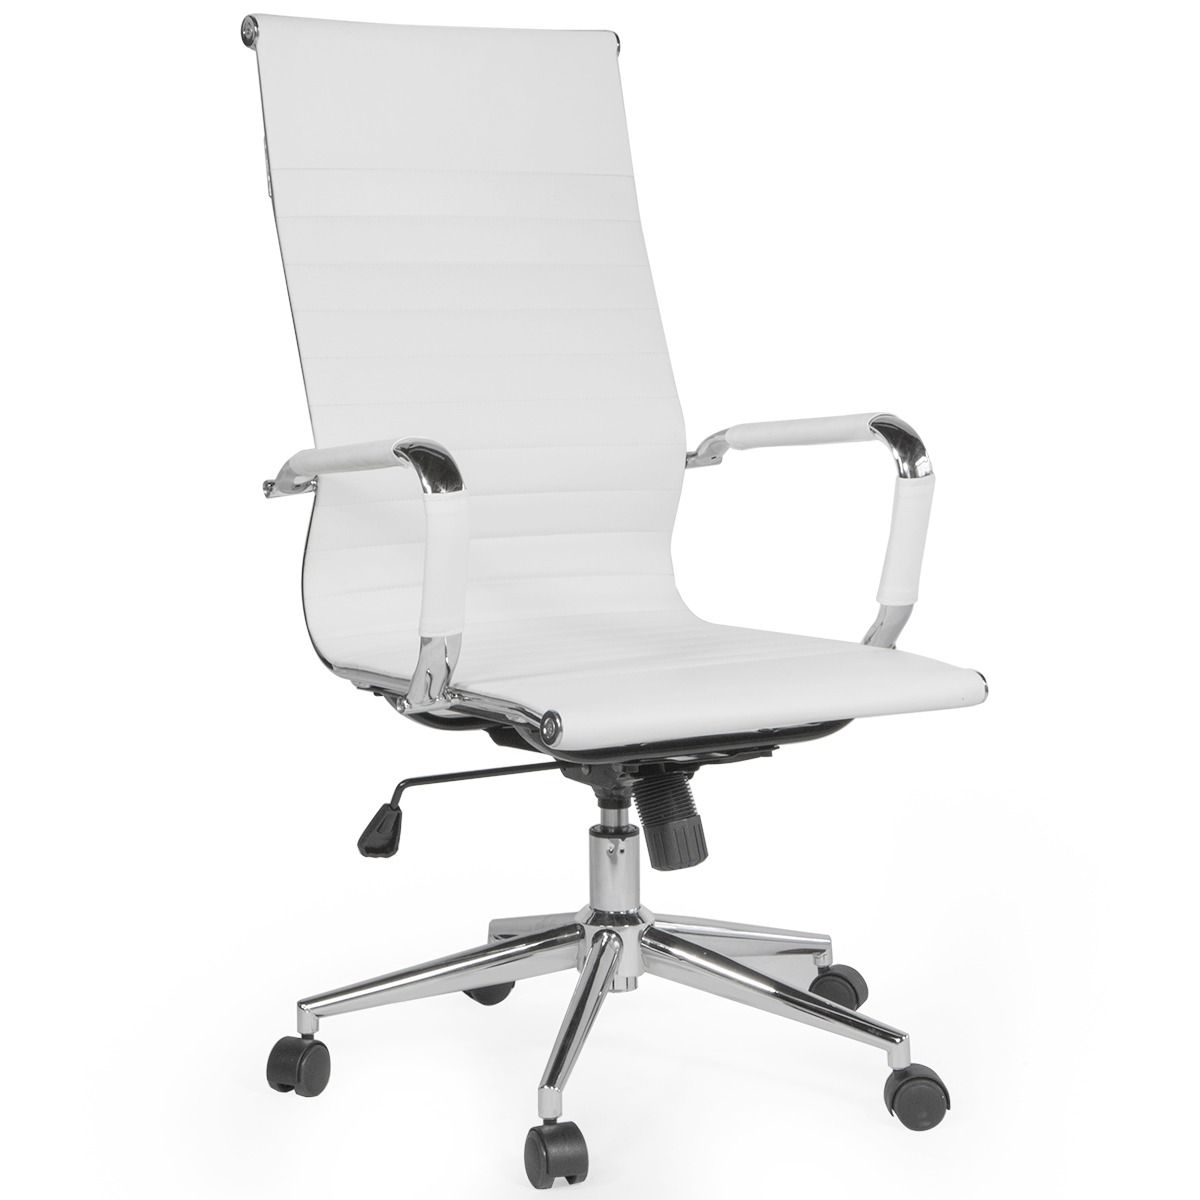 Details about Modern Office Chair Ribbed High-Back Leather Adjustable  Height w/ Wheels, White